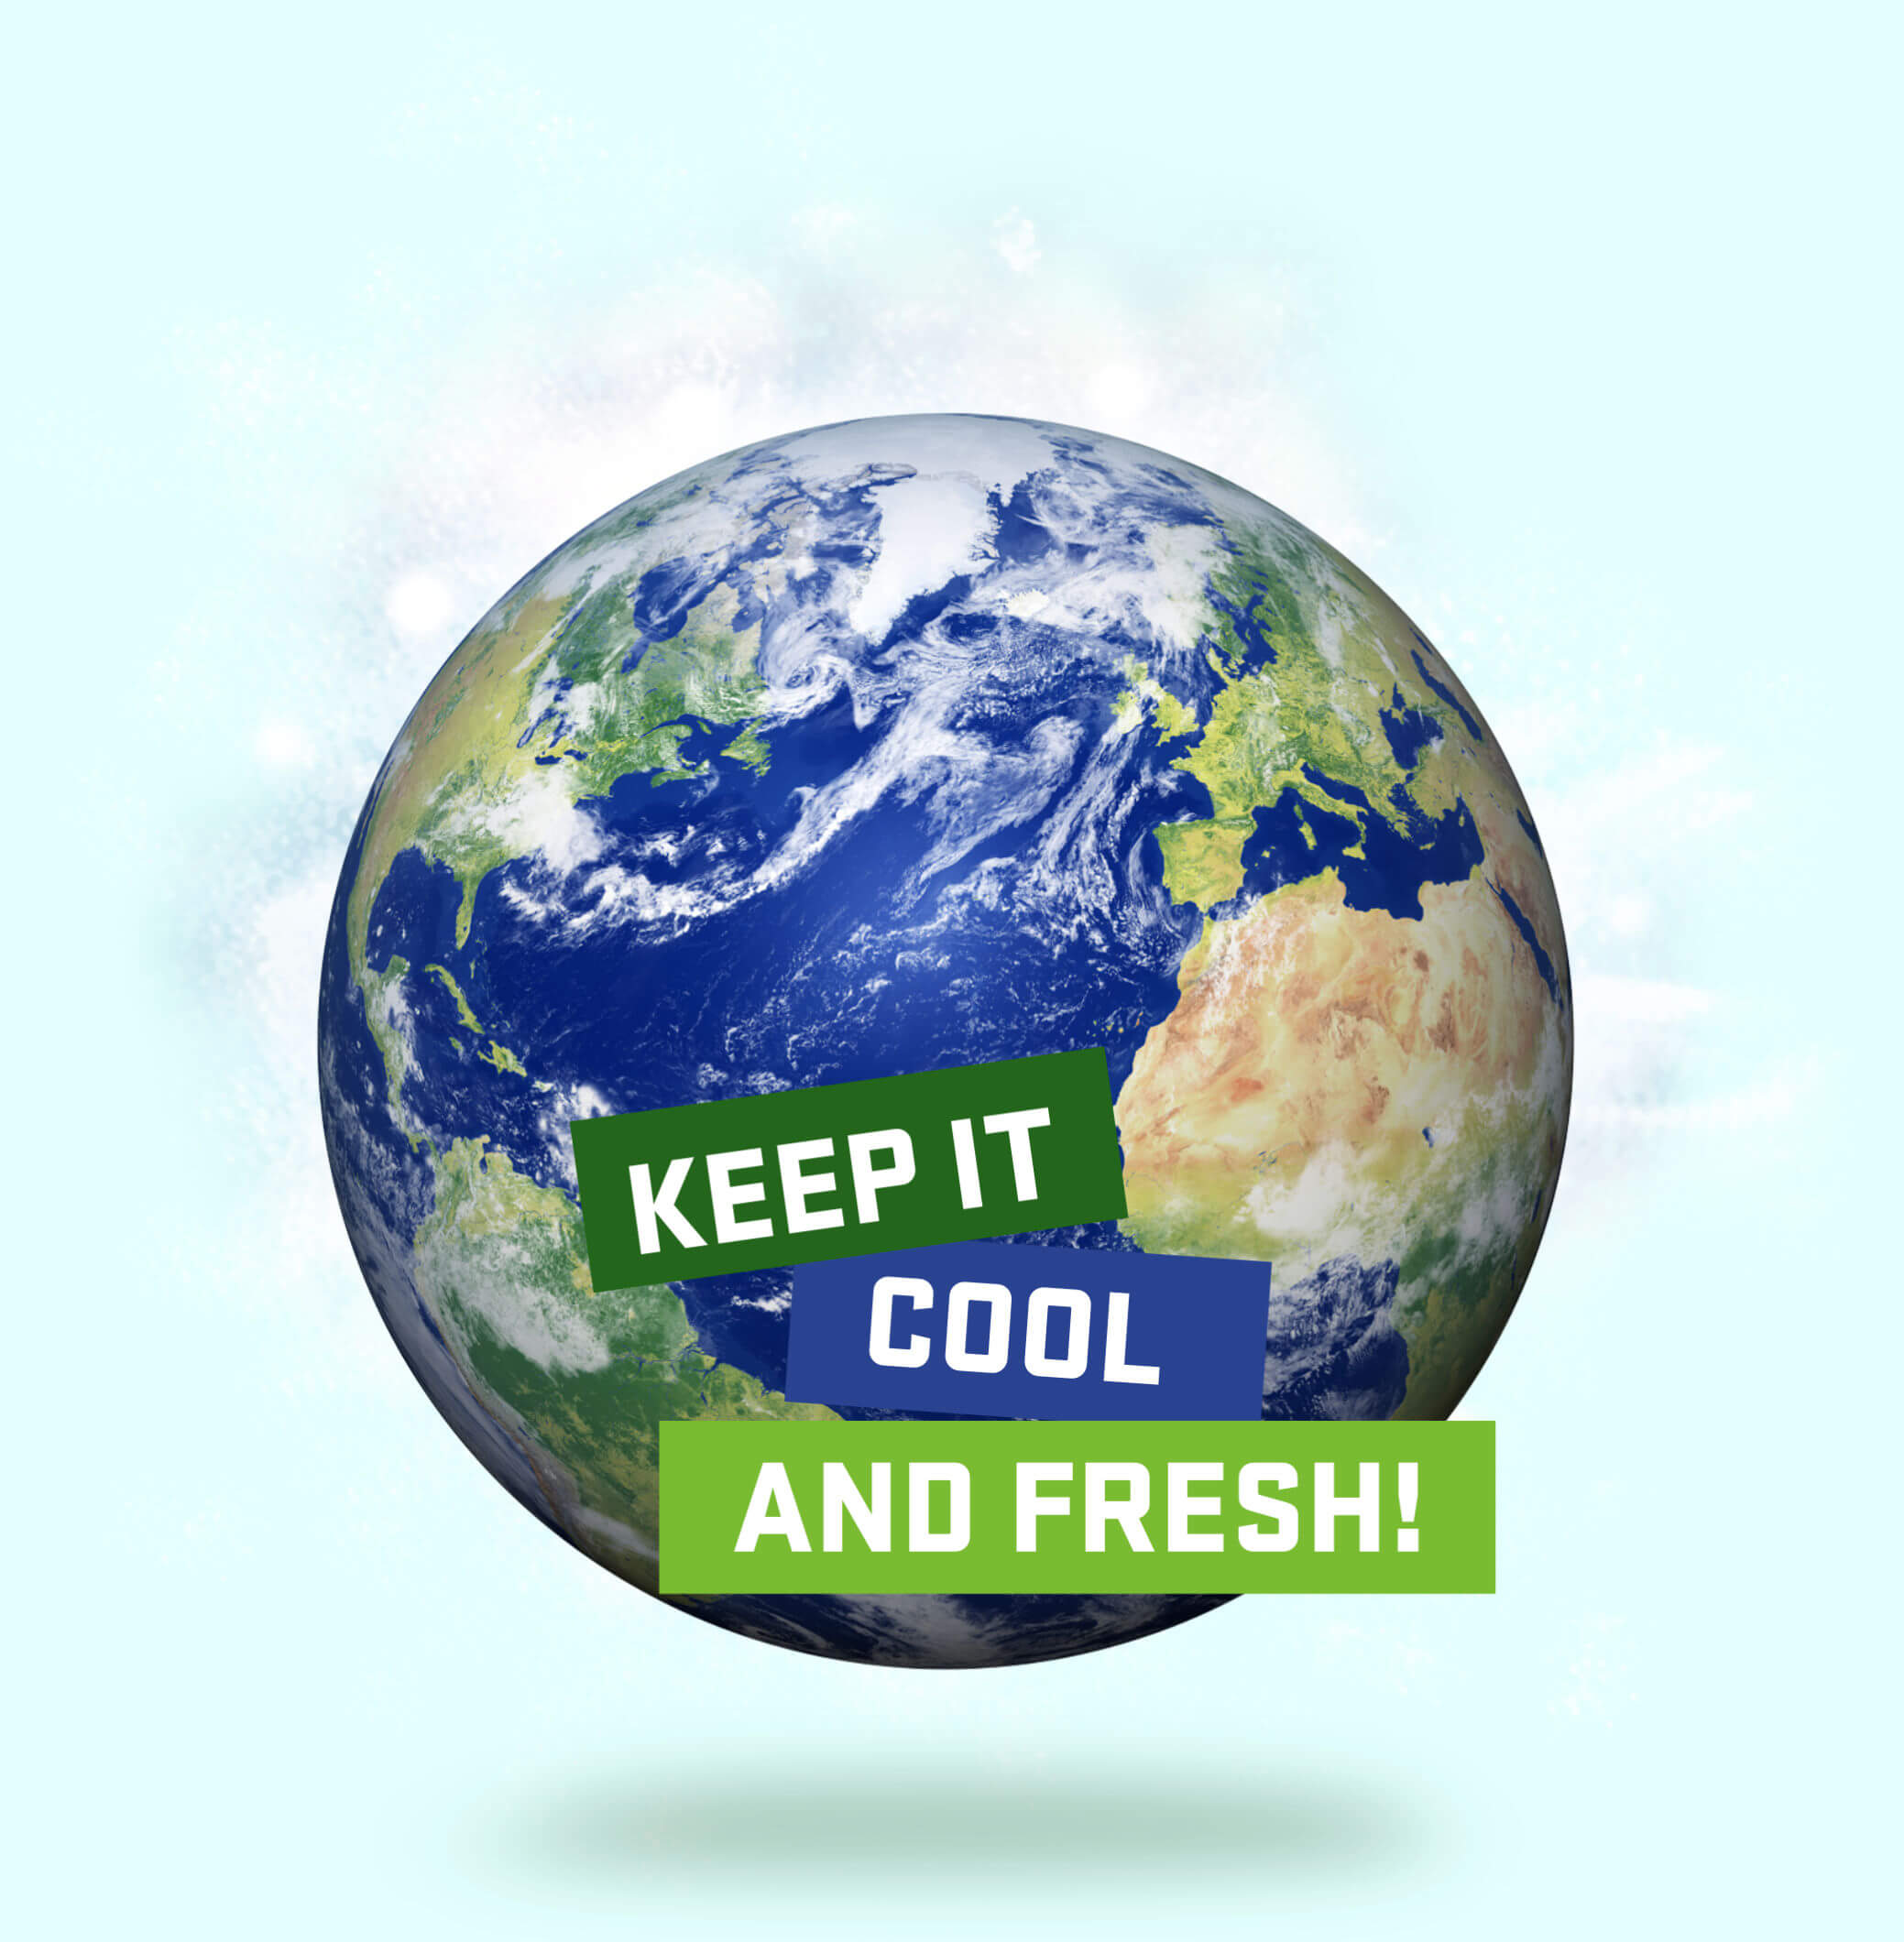 Keep it cool! And fresh!